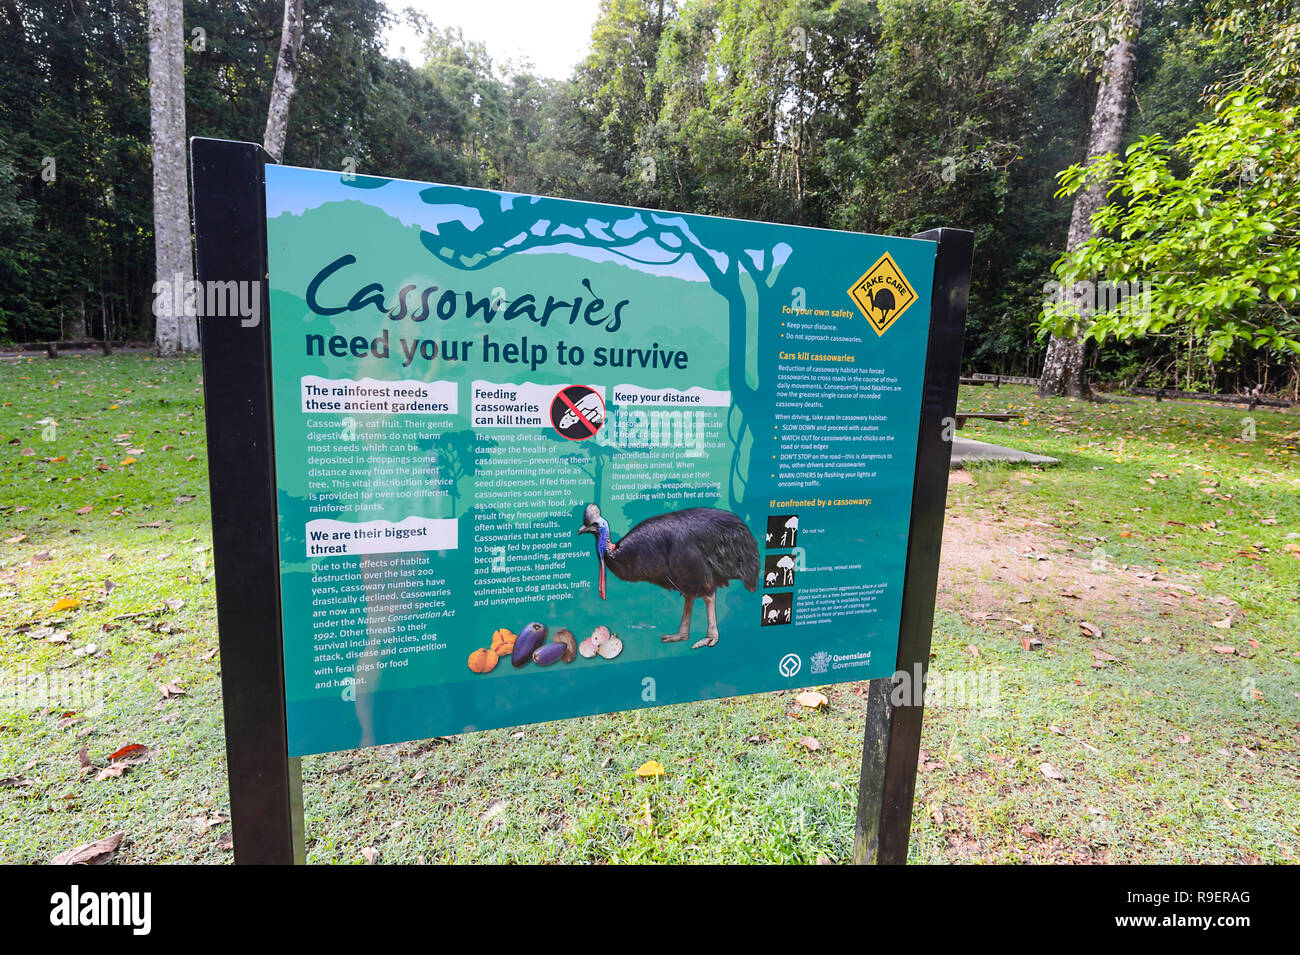 Information sign to protect cassowaries, Hypipamee National Park, Atherton Tableland,  Far North Queensland, FNQ, QLD, Australia - Stock Image